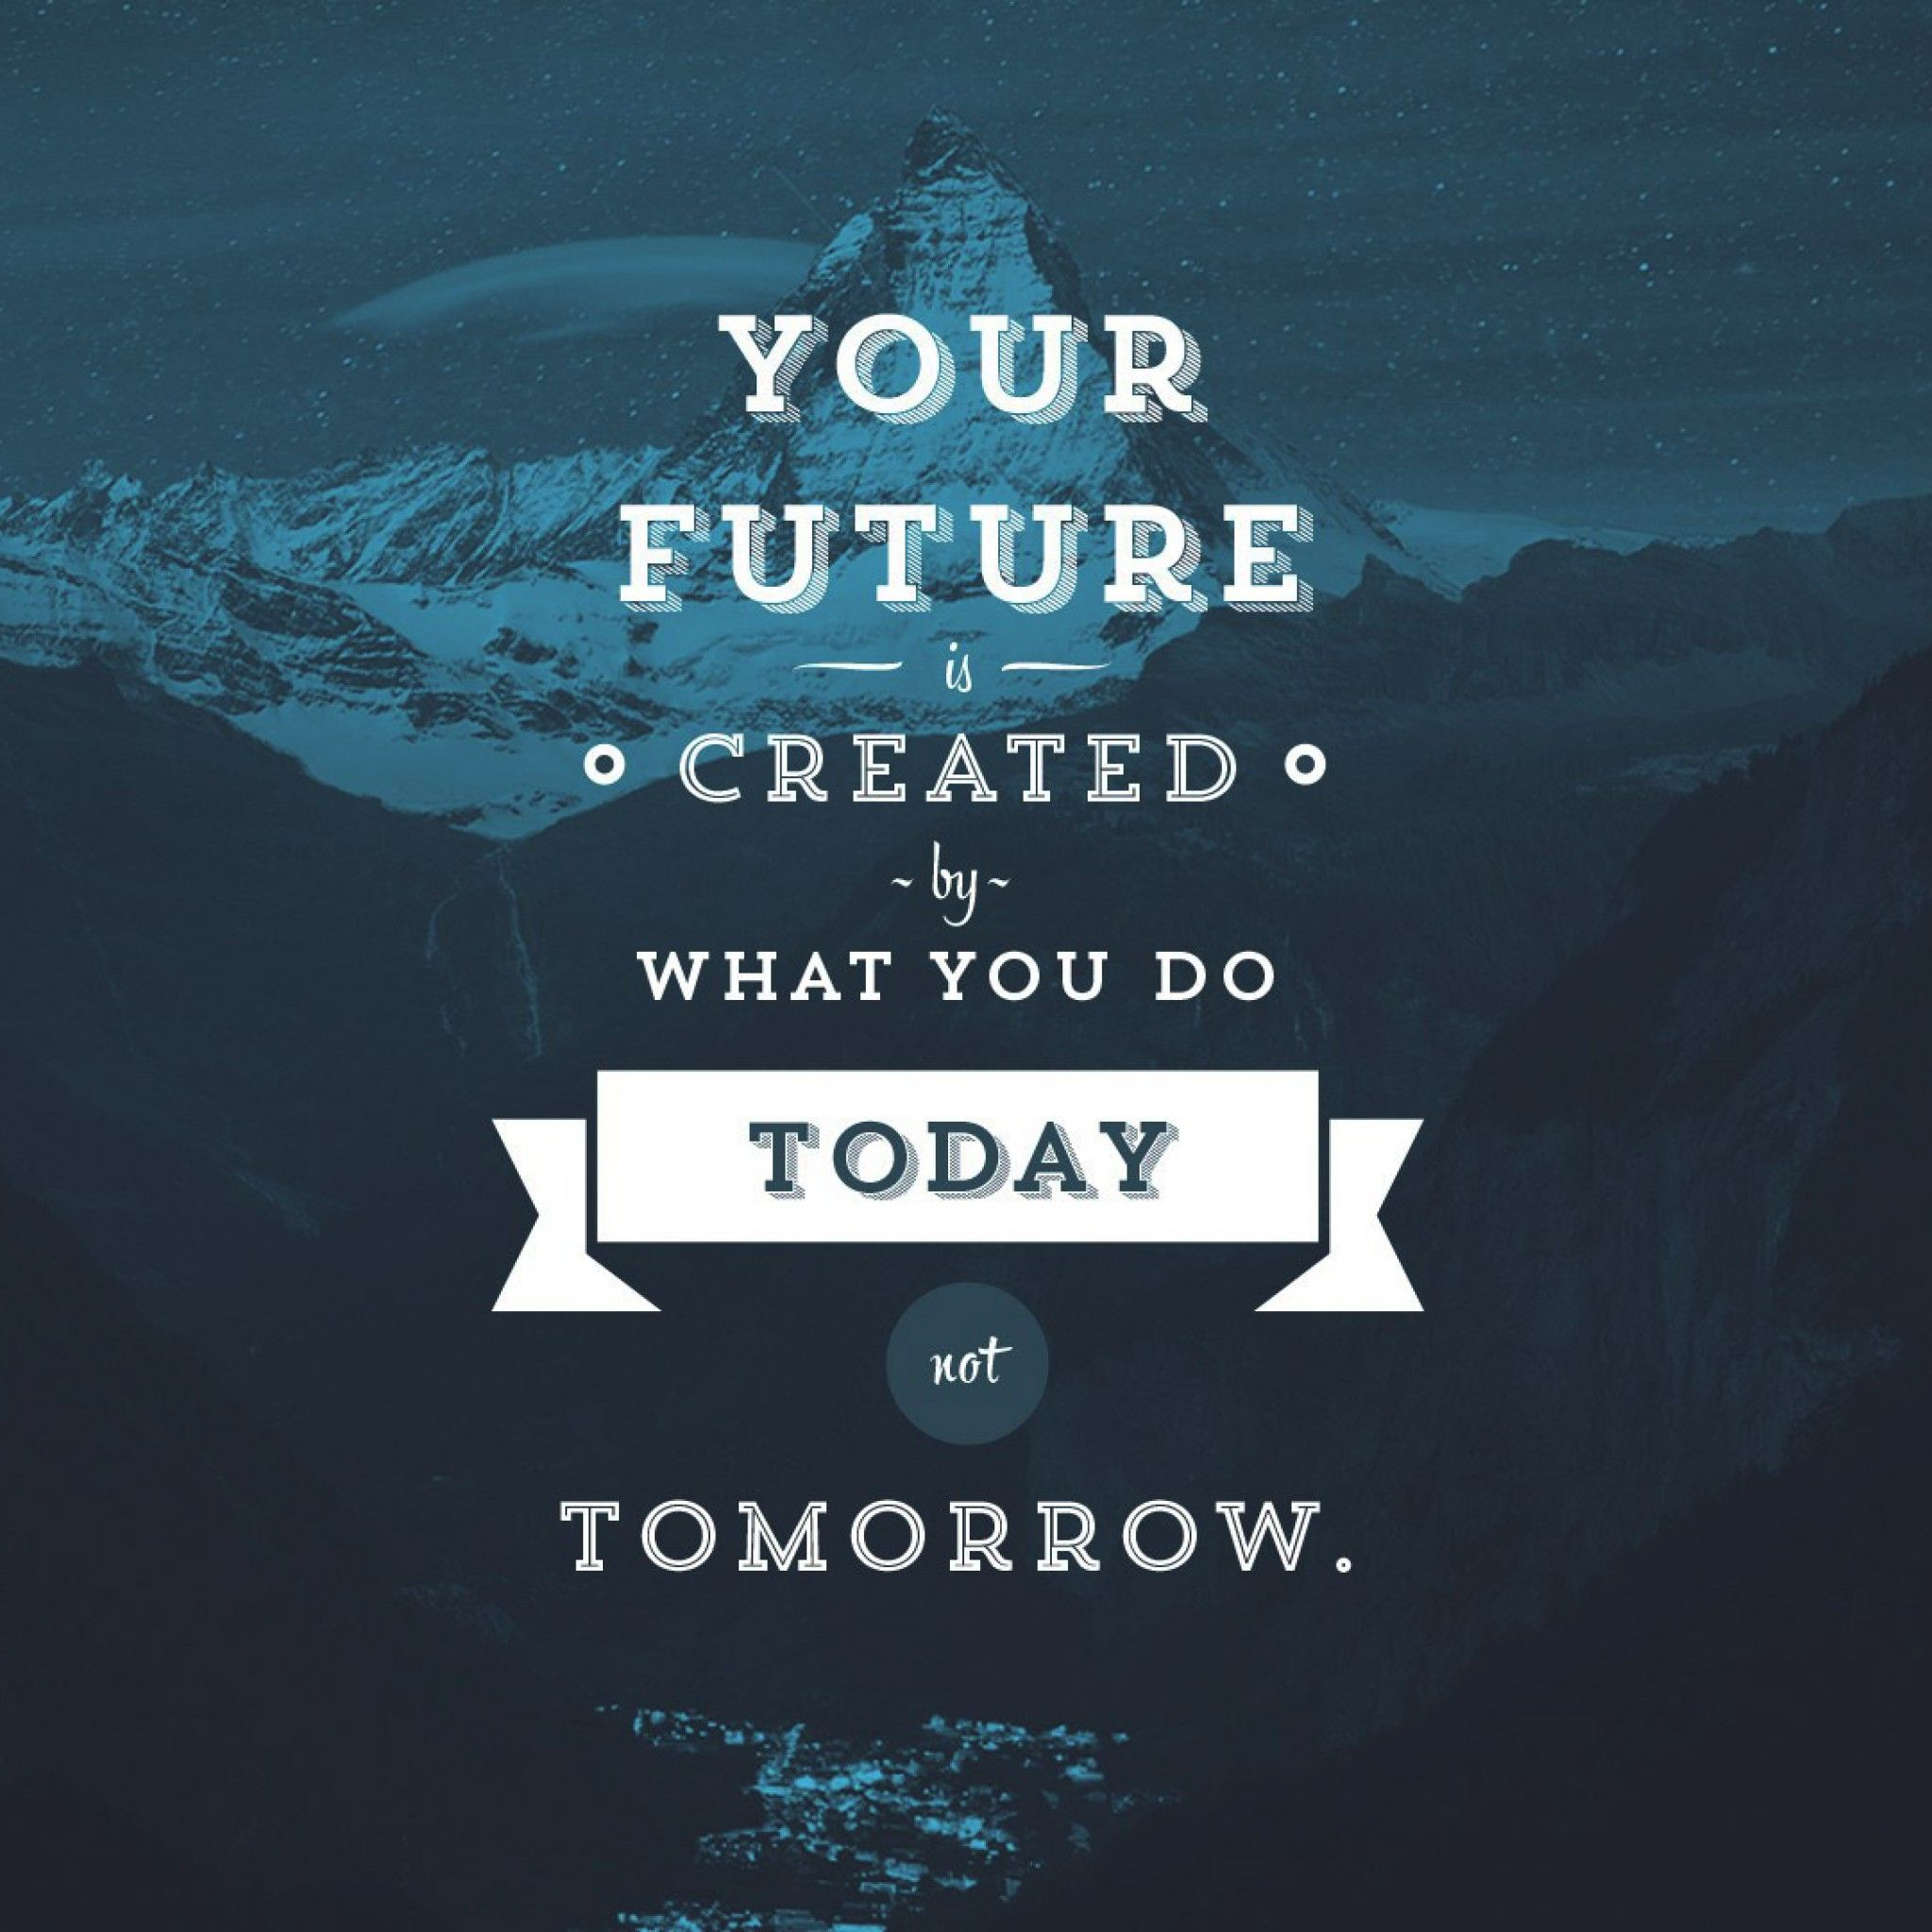 Future Quote iPad Wallpaper HD.jpg 2,048×2,048 pixels